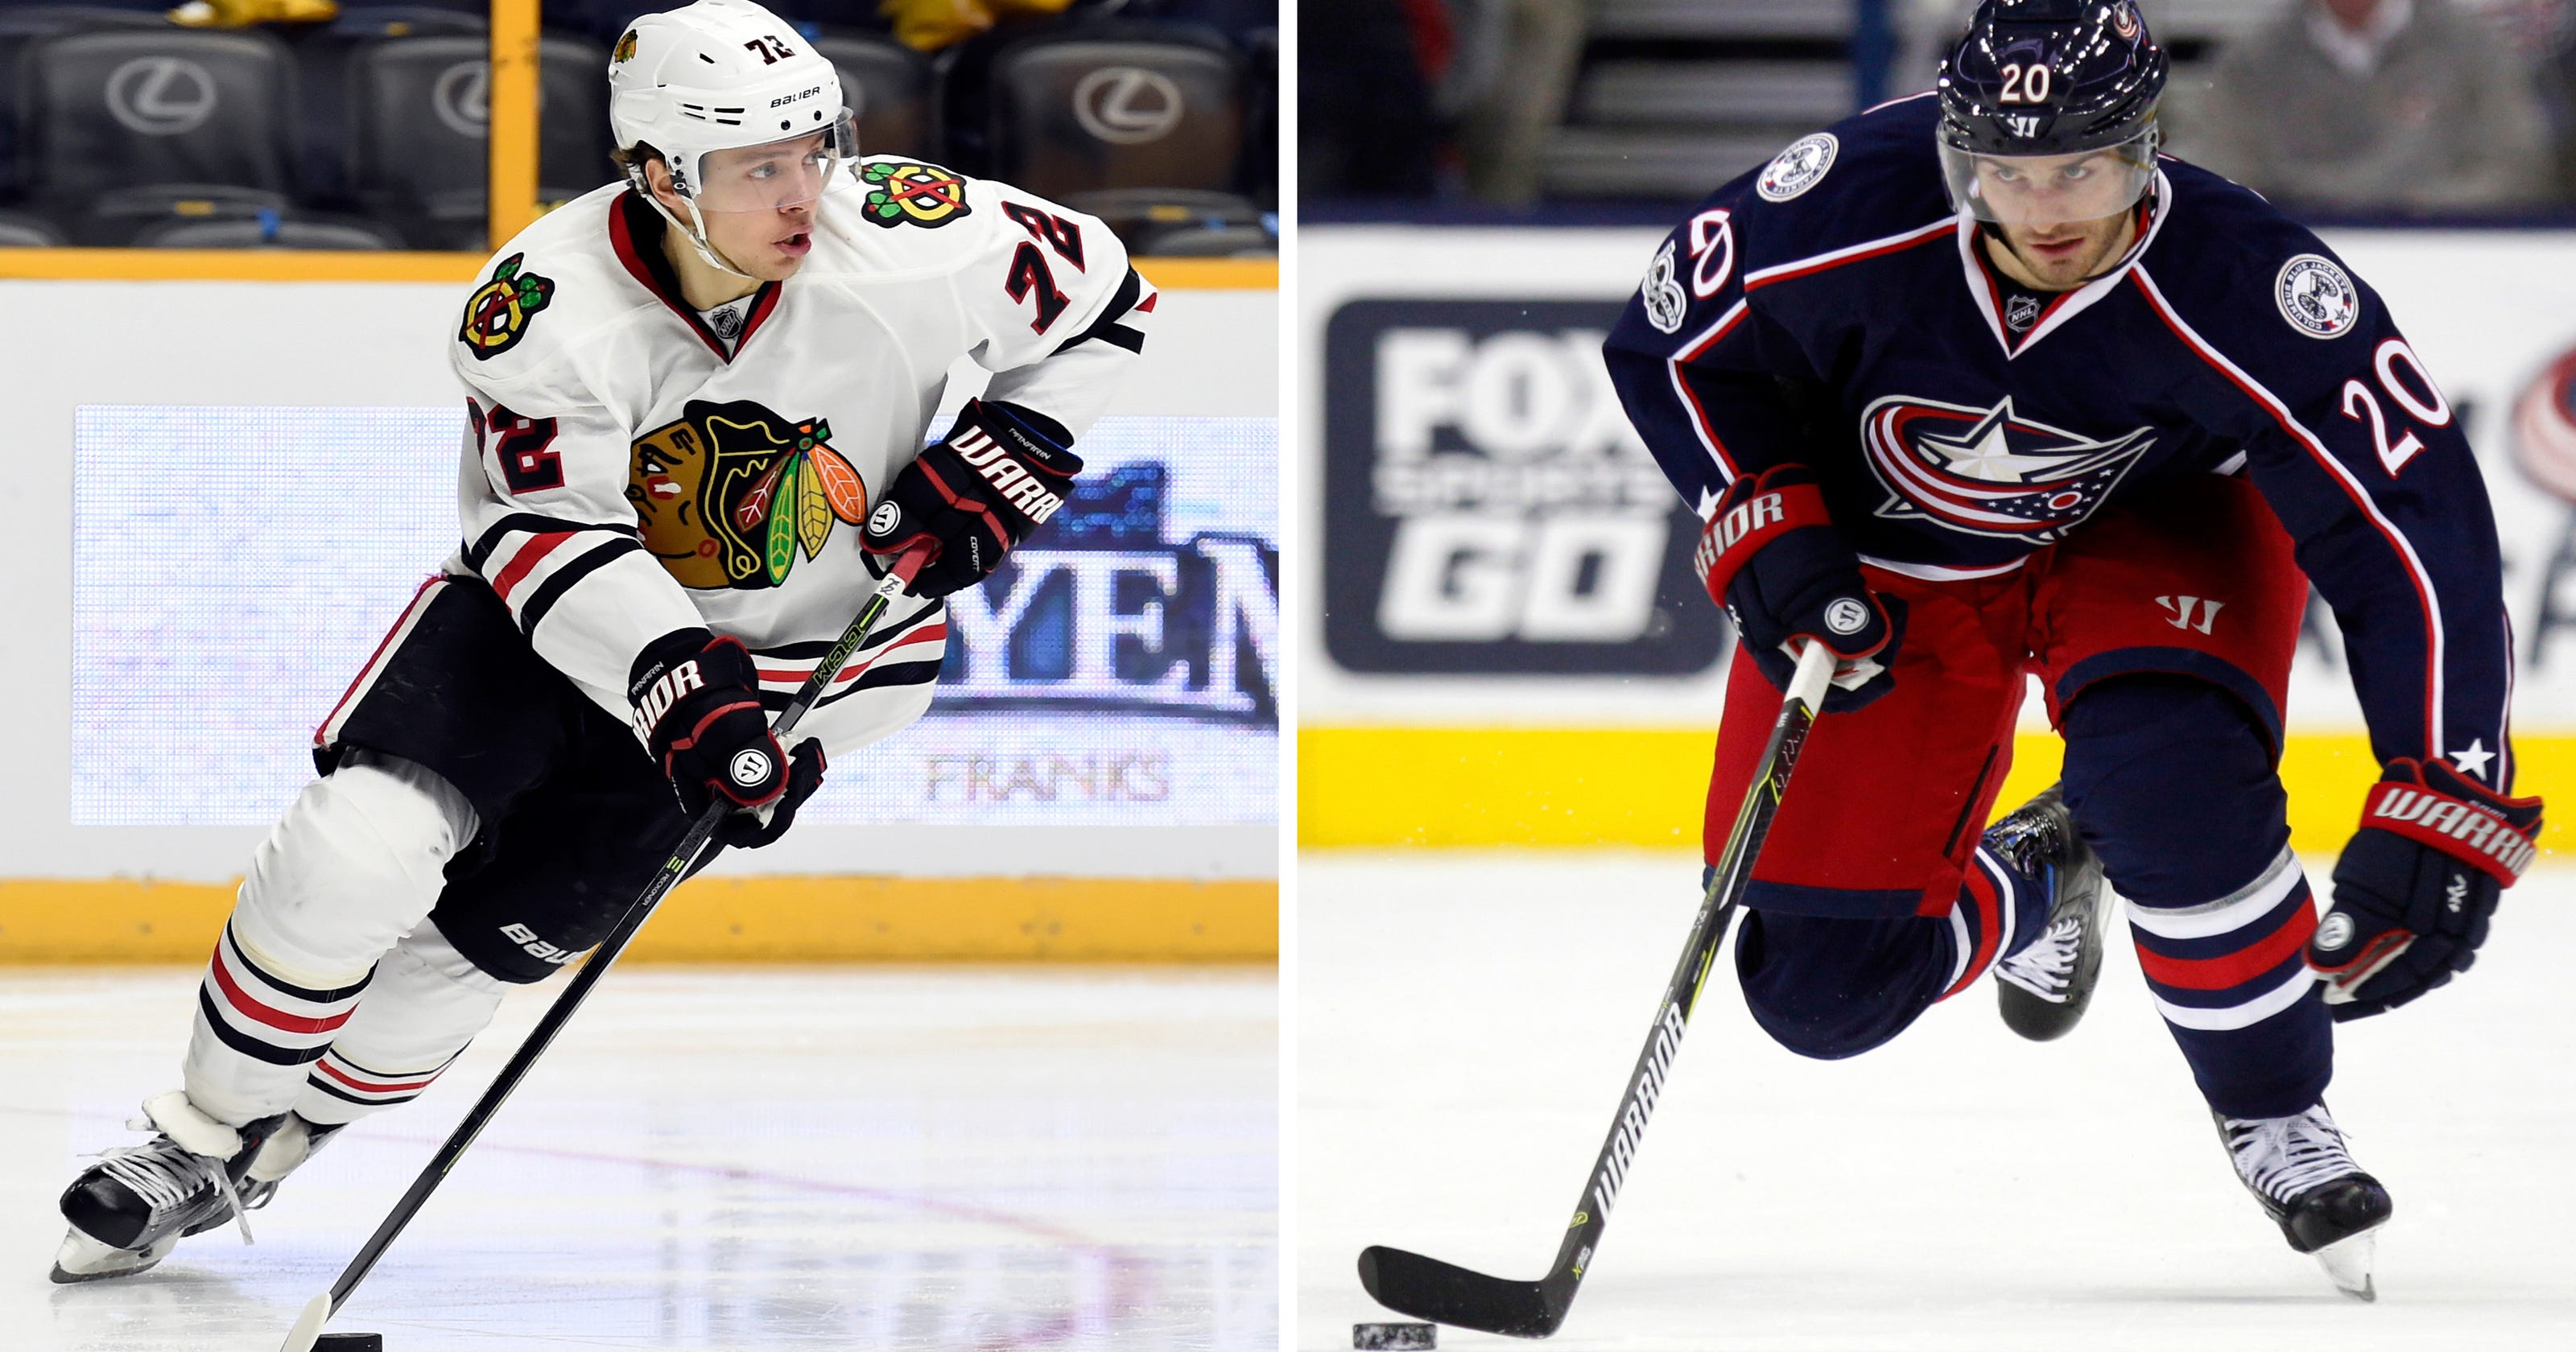 finest selection f3d04 6b817 Blackhawks deal Panarin and Hjalmarsson, get Saad back